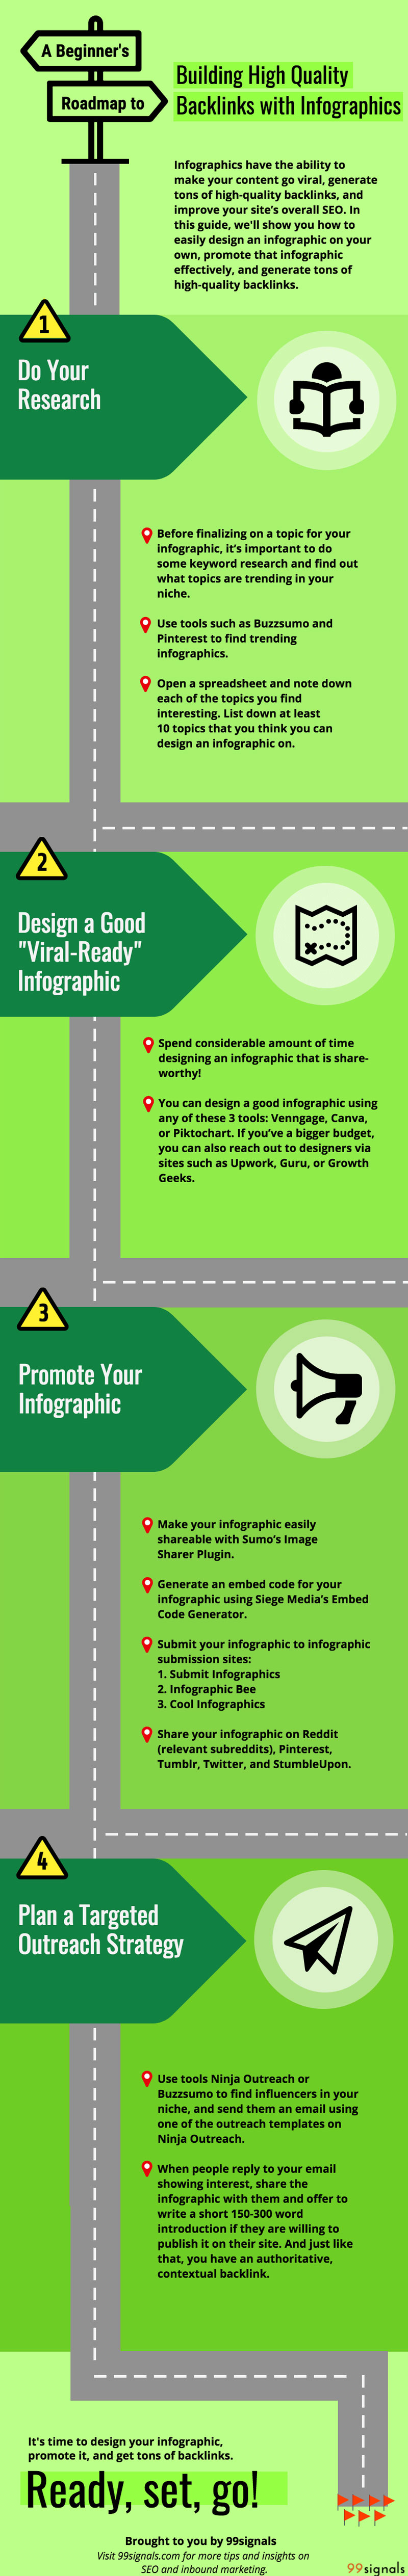 How to Build High Quality Backlinks with Infographics